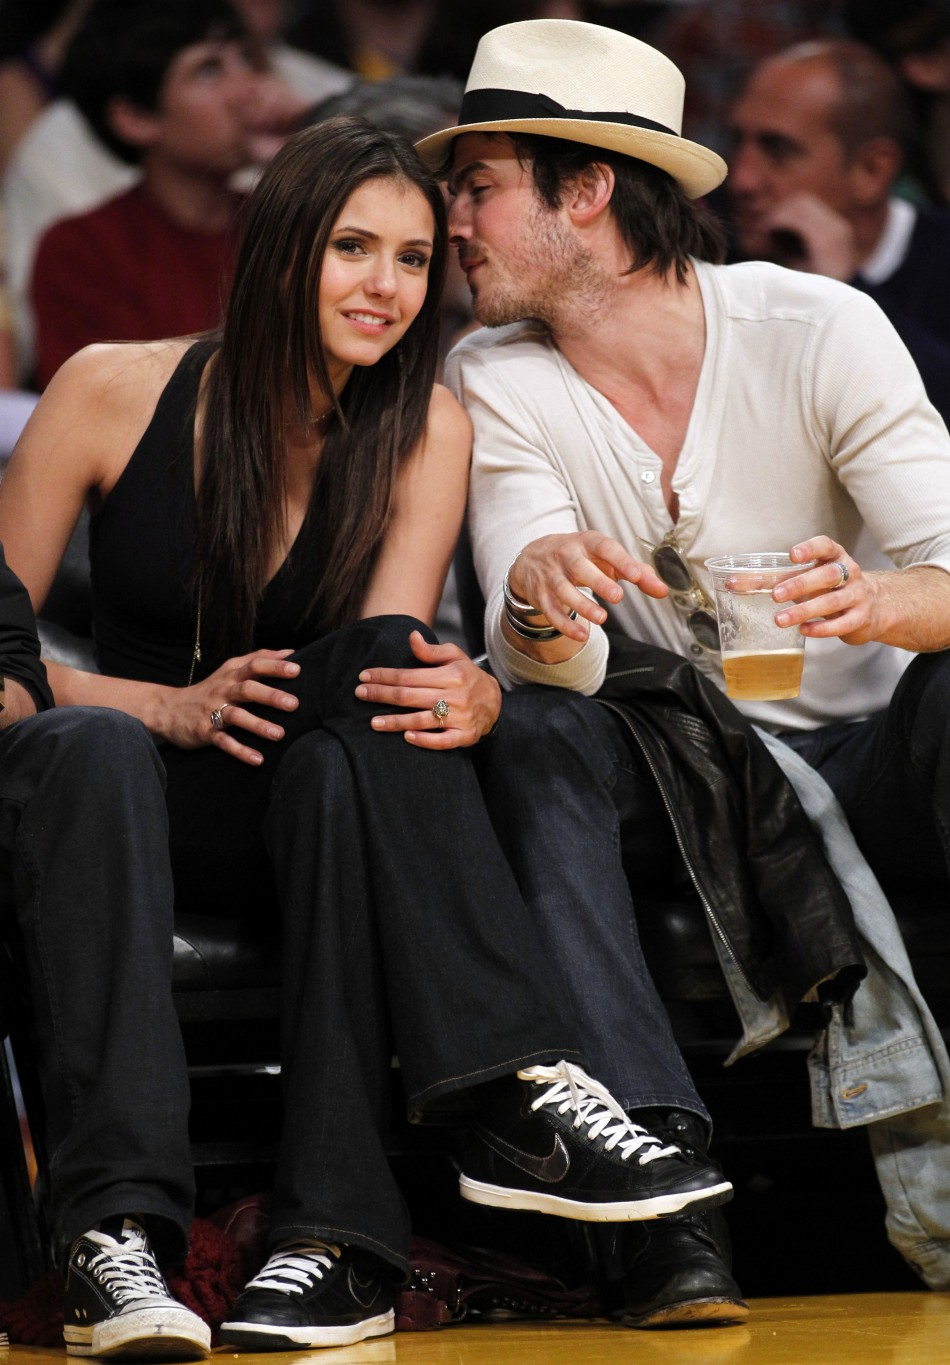 Vampire diaries ian somerhalder and nina dobrev dating. Vampire diaries ian somerhalder and nina dobrev dating.